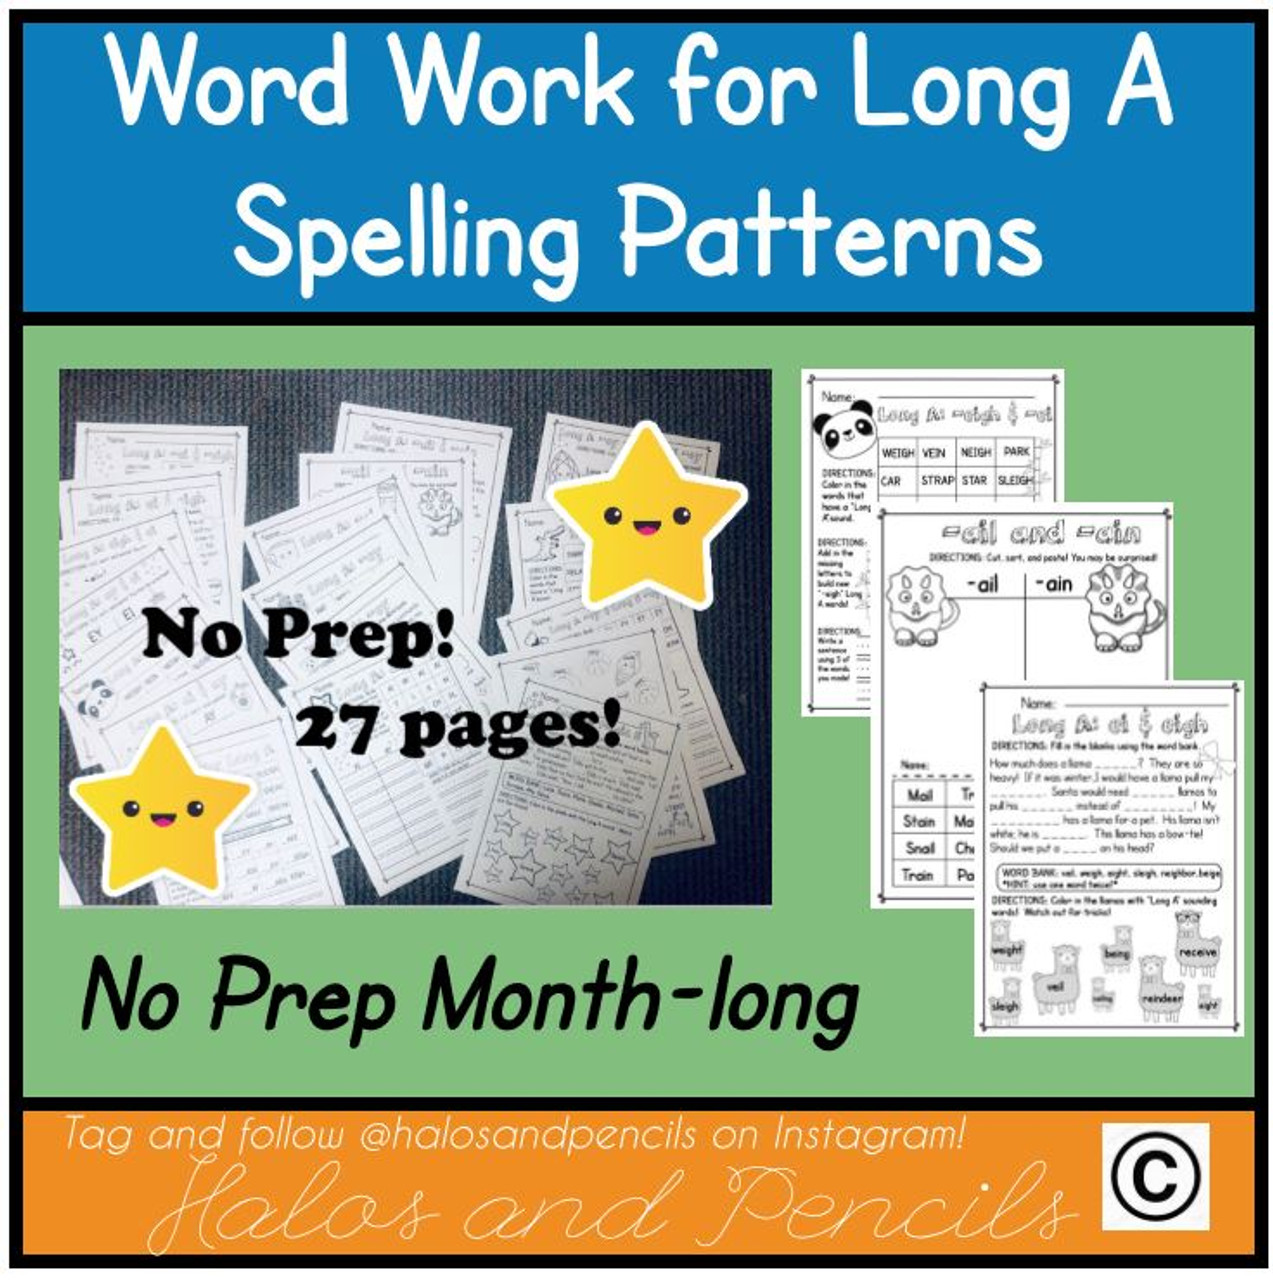 Month-long no-prep word work for Long A!